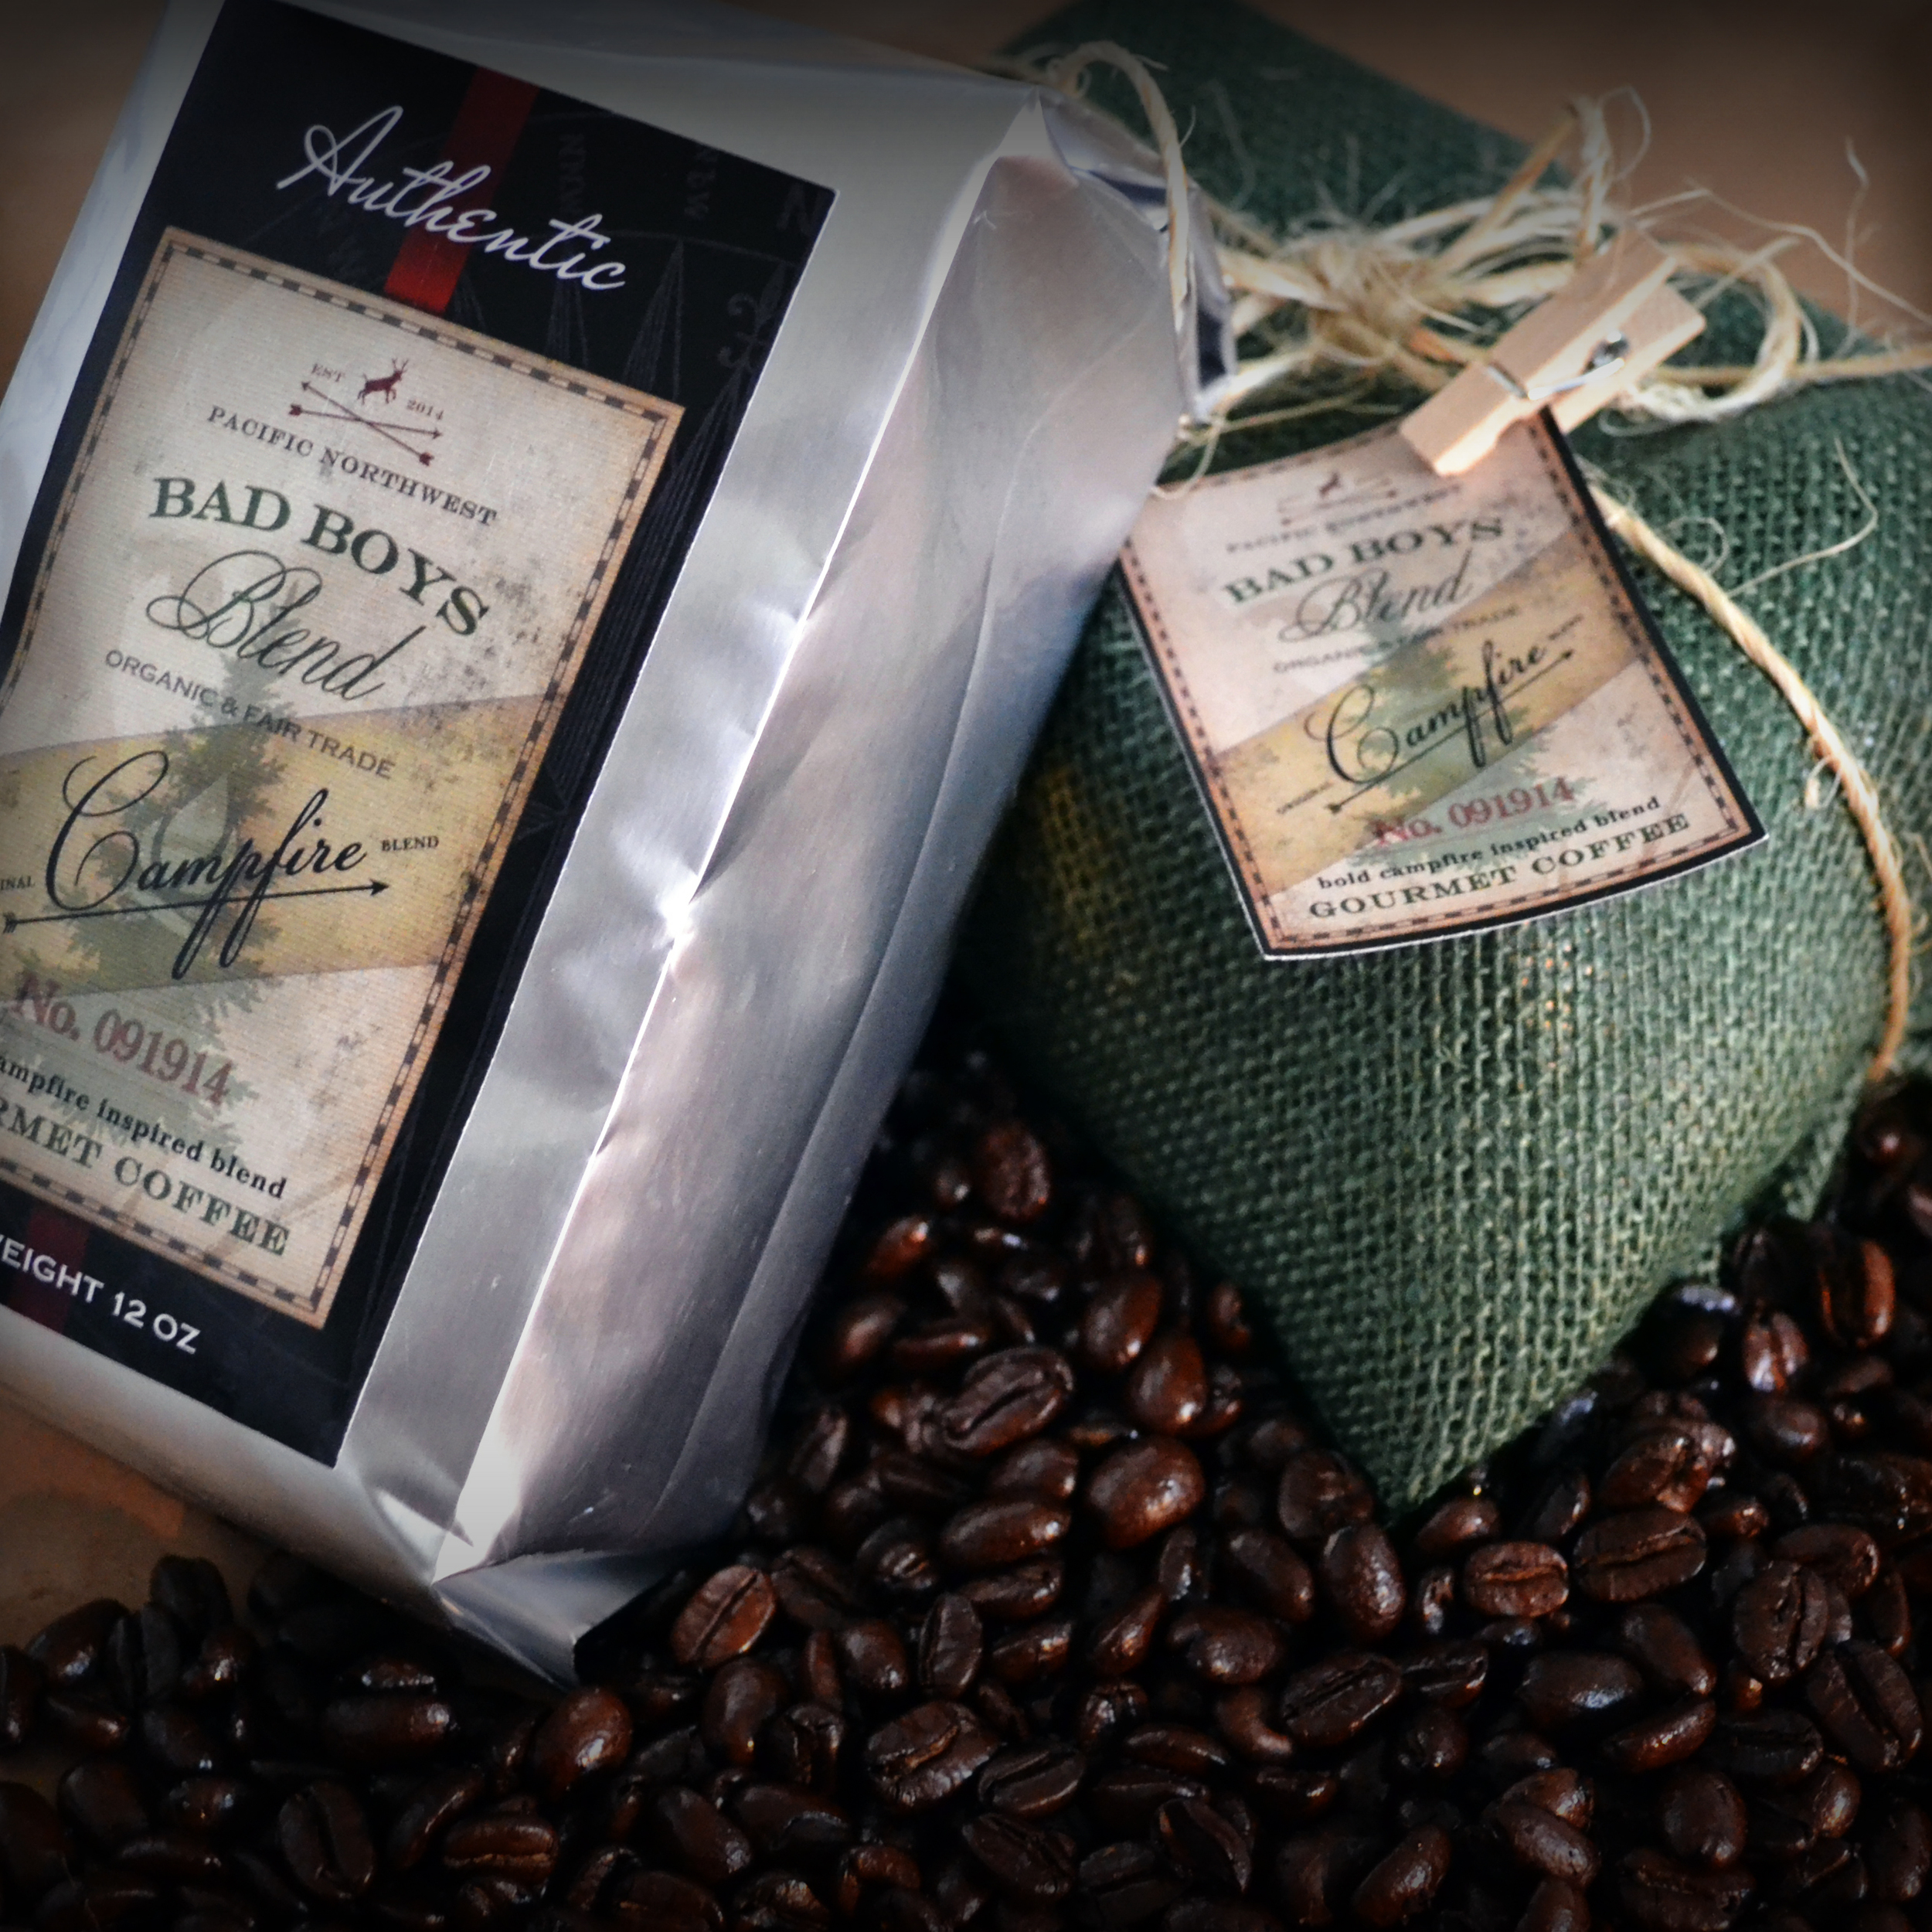 _0994 Bad Boys Blend [TM] [v2] Coffee Gift for James Warner by Graham Hnedak 08 OCT 2014.jpg